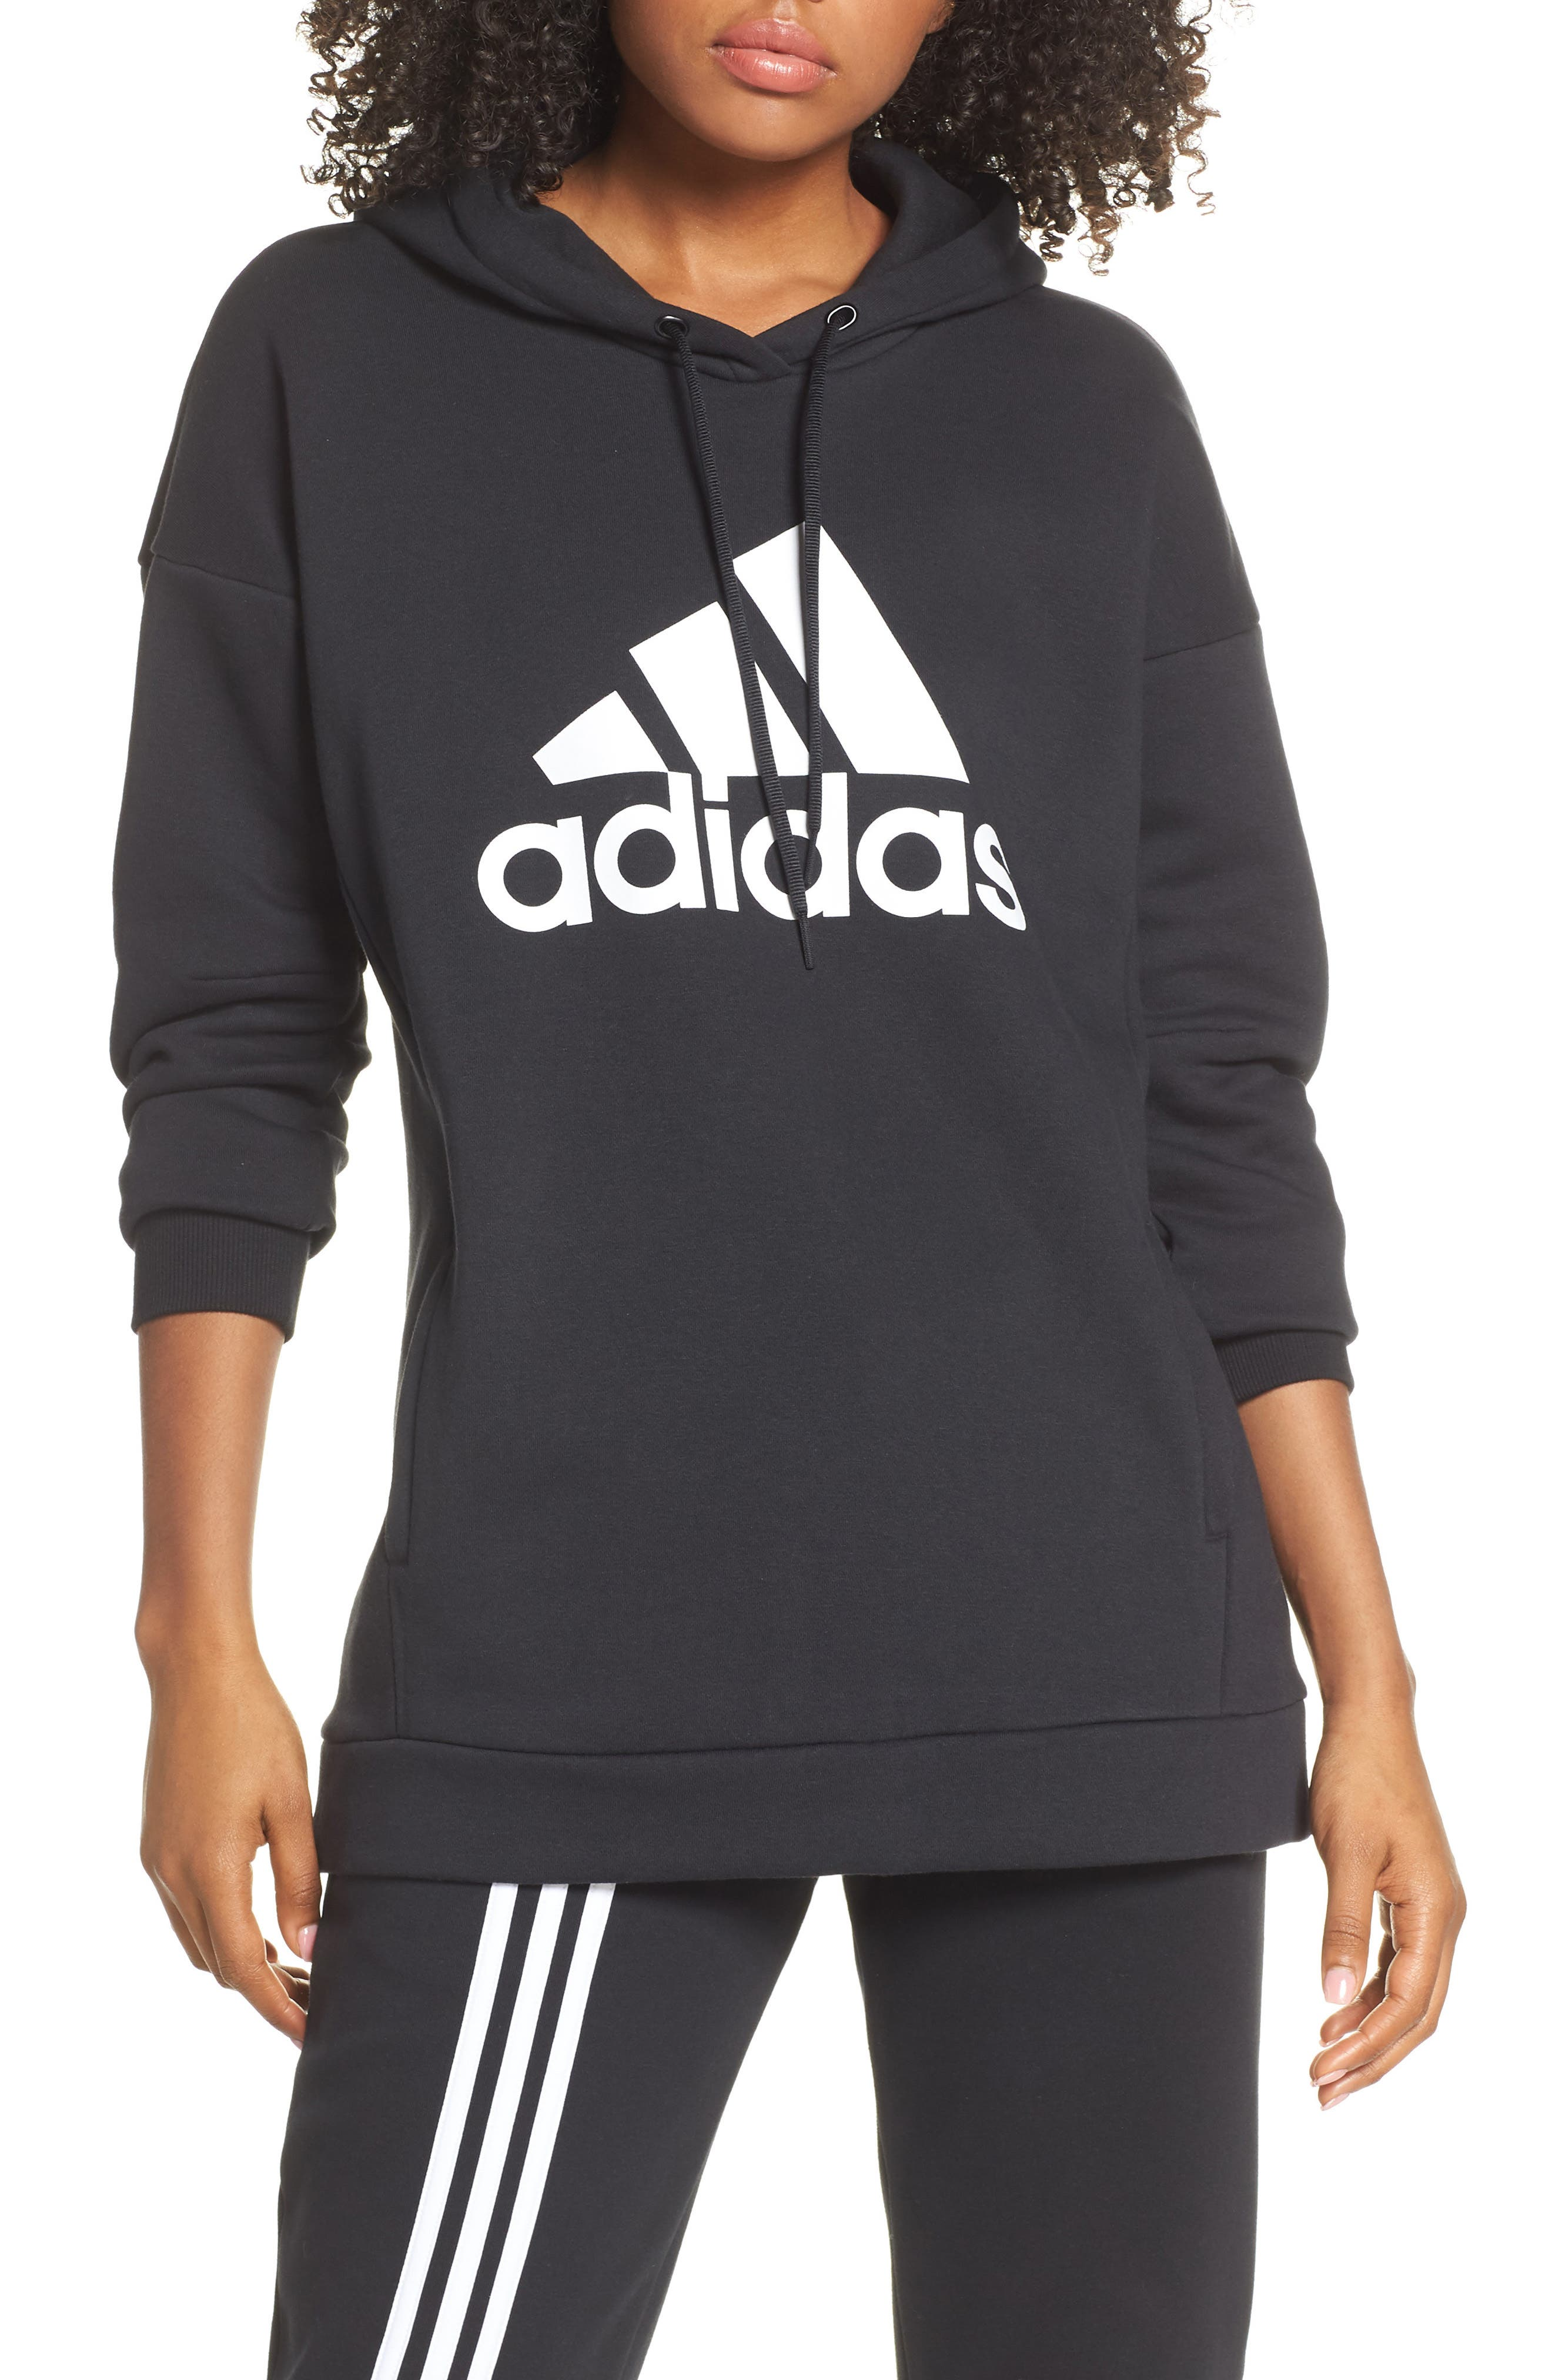 Women's Adidas Clothing   Nordstrom